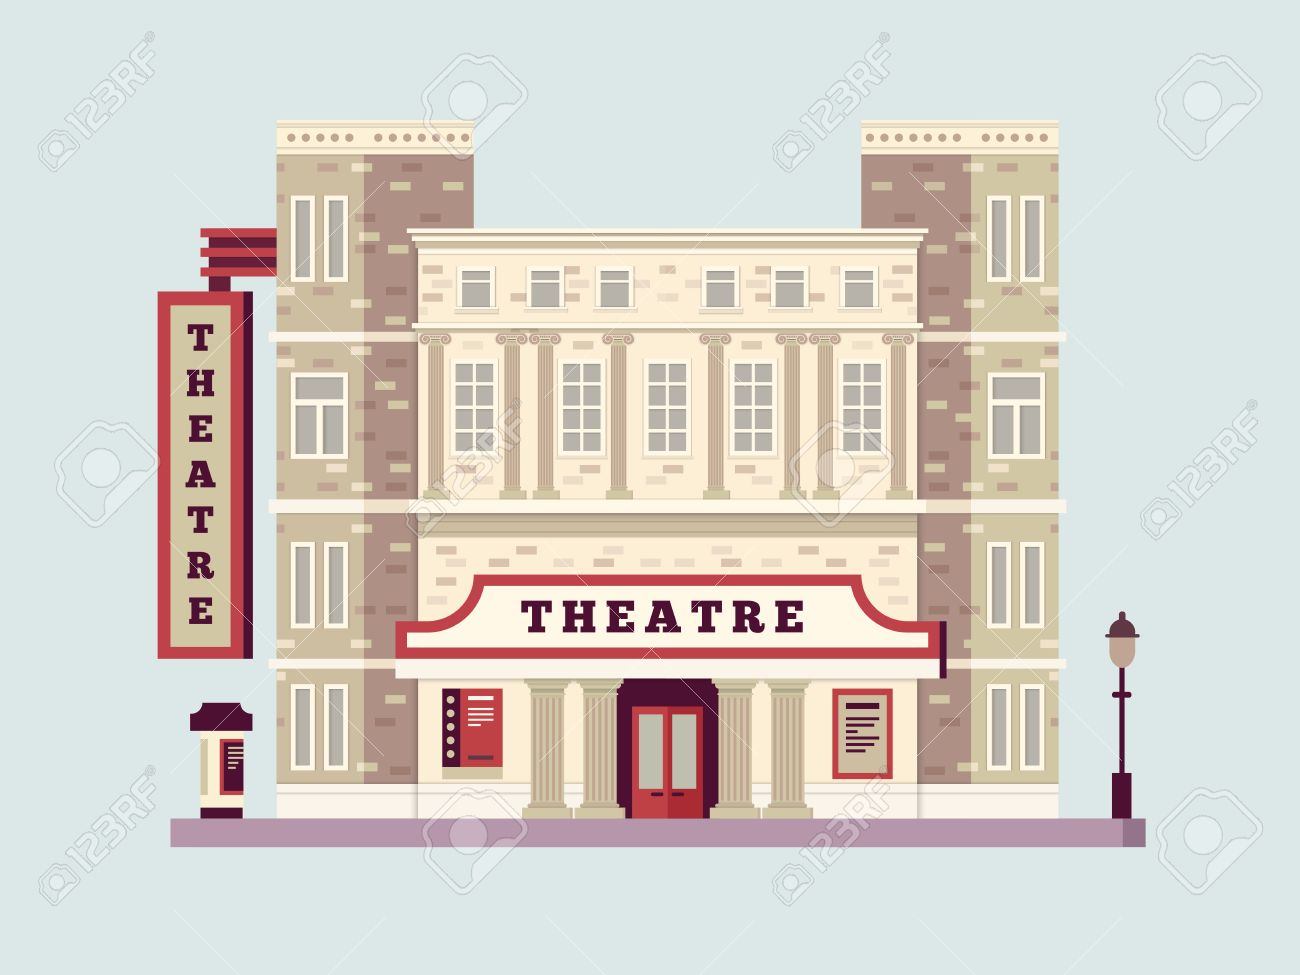 Theater Building Cliparts 1.